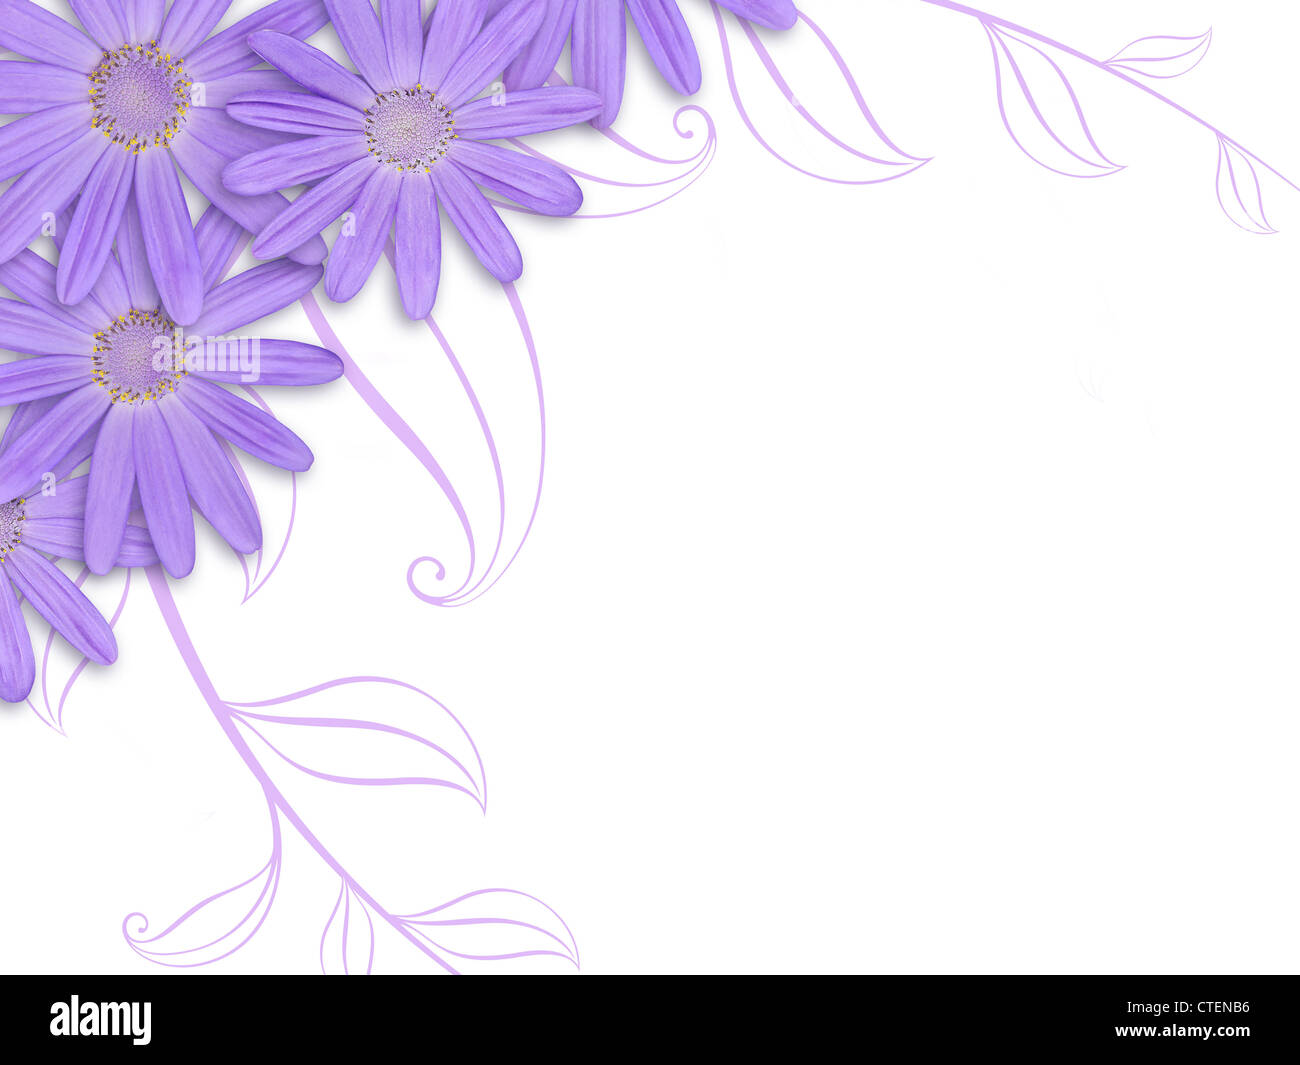 Bunch Of Purple Cineraria With Stylised Leaf Design On White